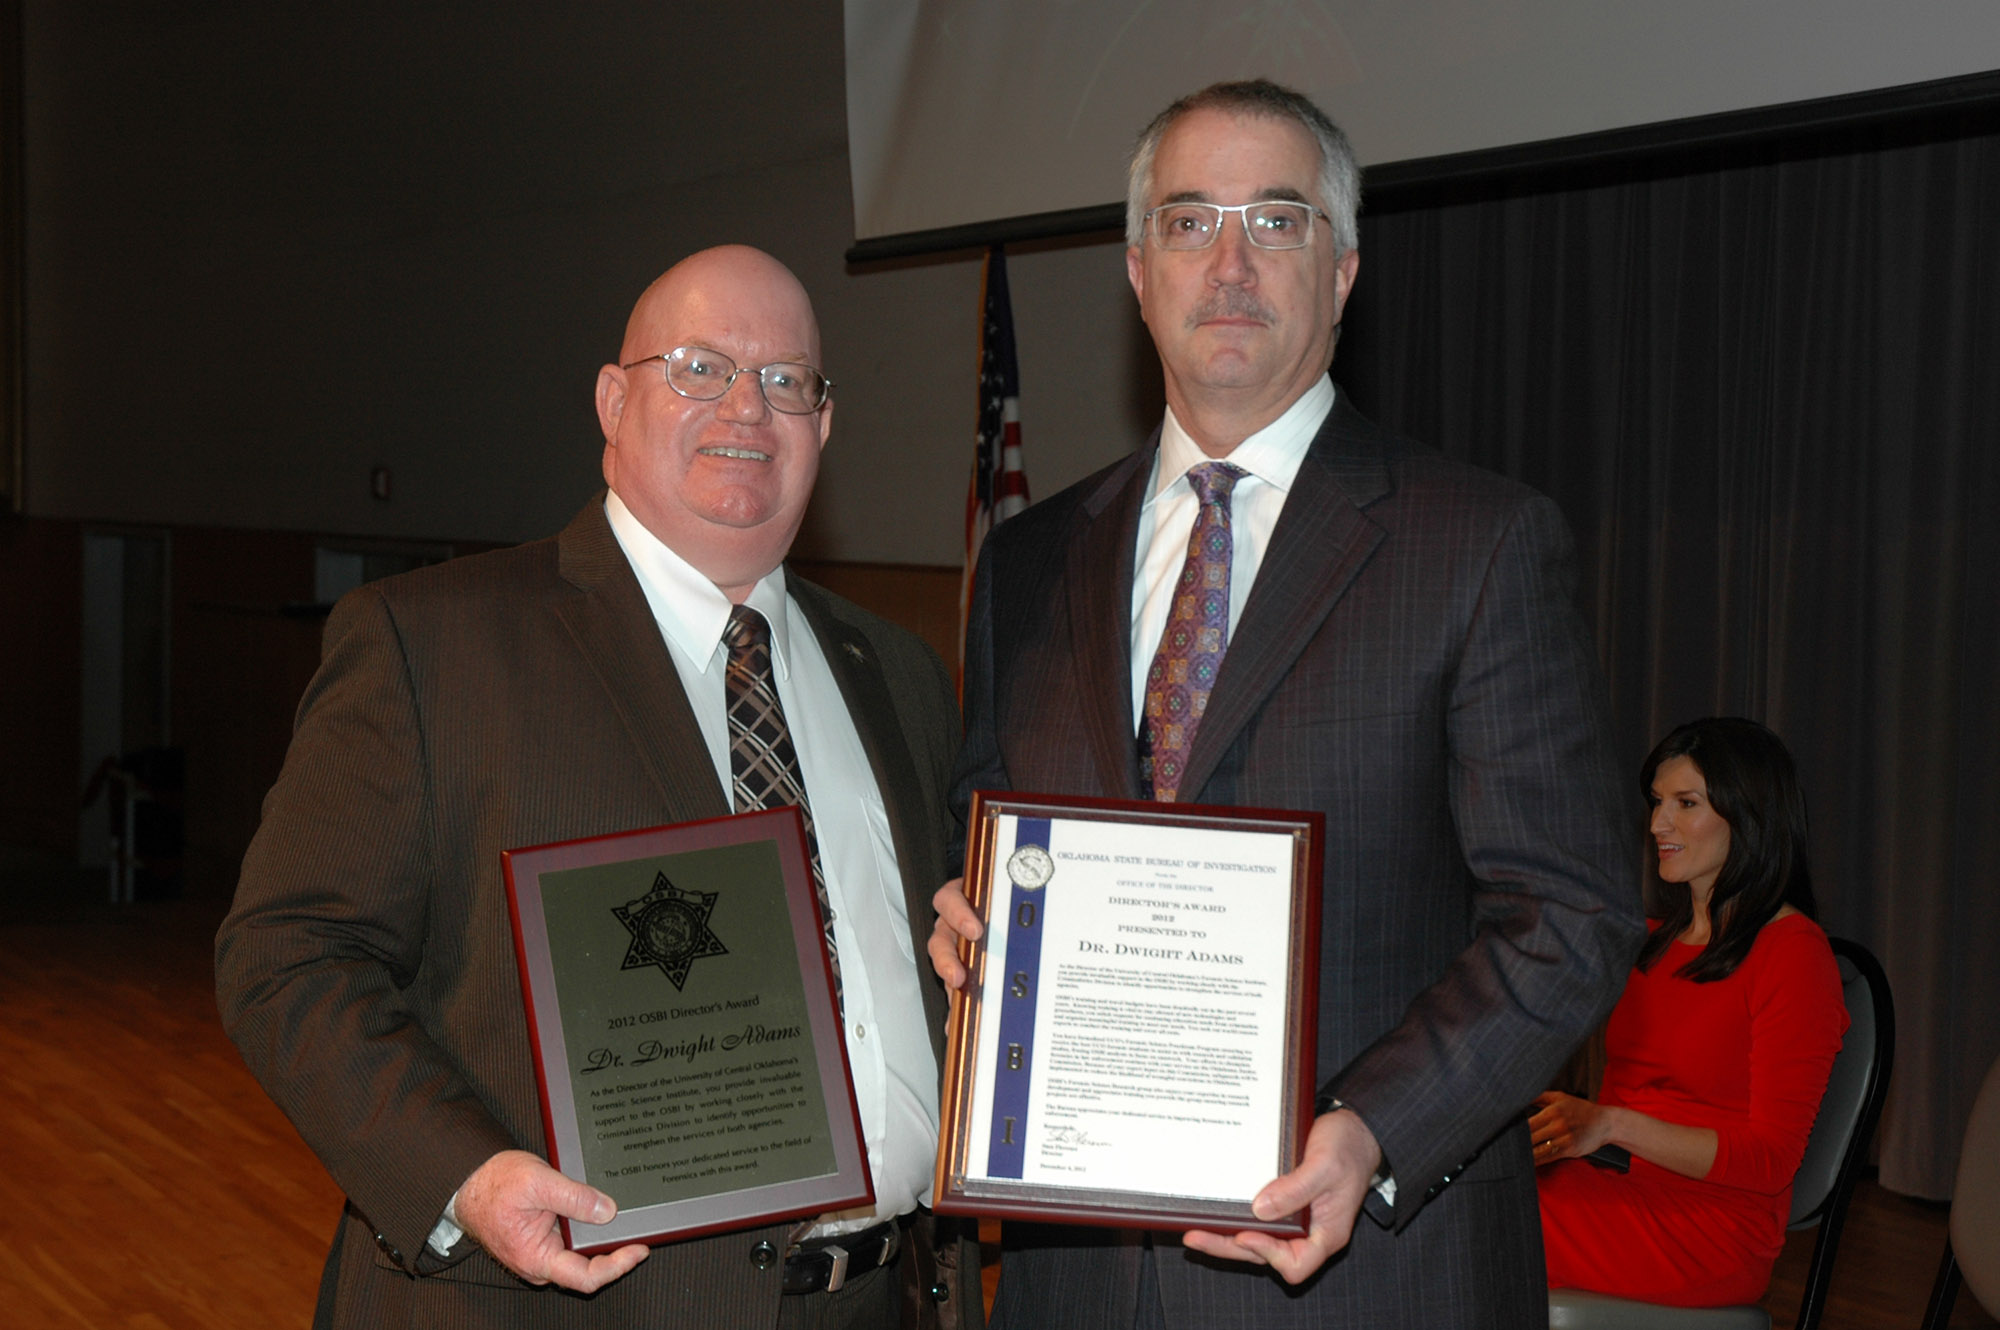 The Oklahoma State Bureau of Investigation (OSBI) Director Stan Florence (left) awarded Dwight Adams, Ph.D., (right) director of the University of Central Oklahoma W. Roger Webb Forensic Science Institute, the Director's Award for Law Enforcement at the annual OSBI Awards Banquet at the National Cowboy and Western Heritage Museum on Dec. 4.